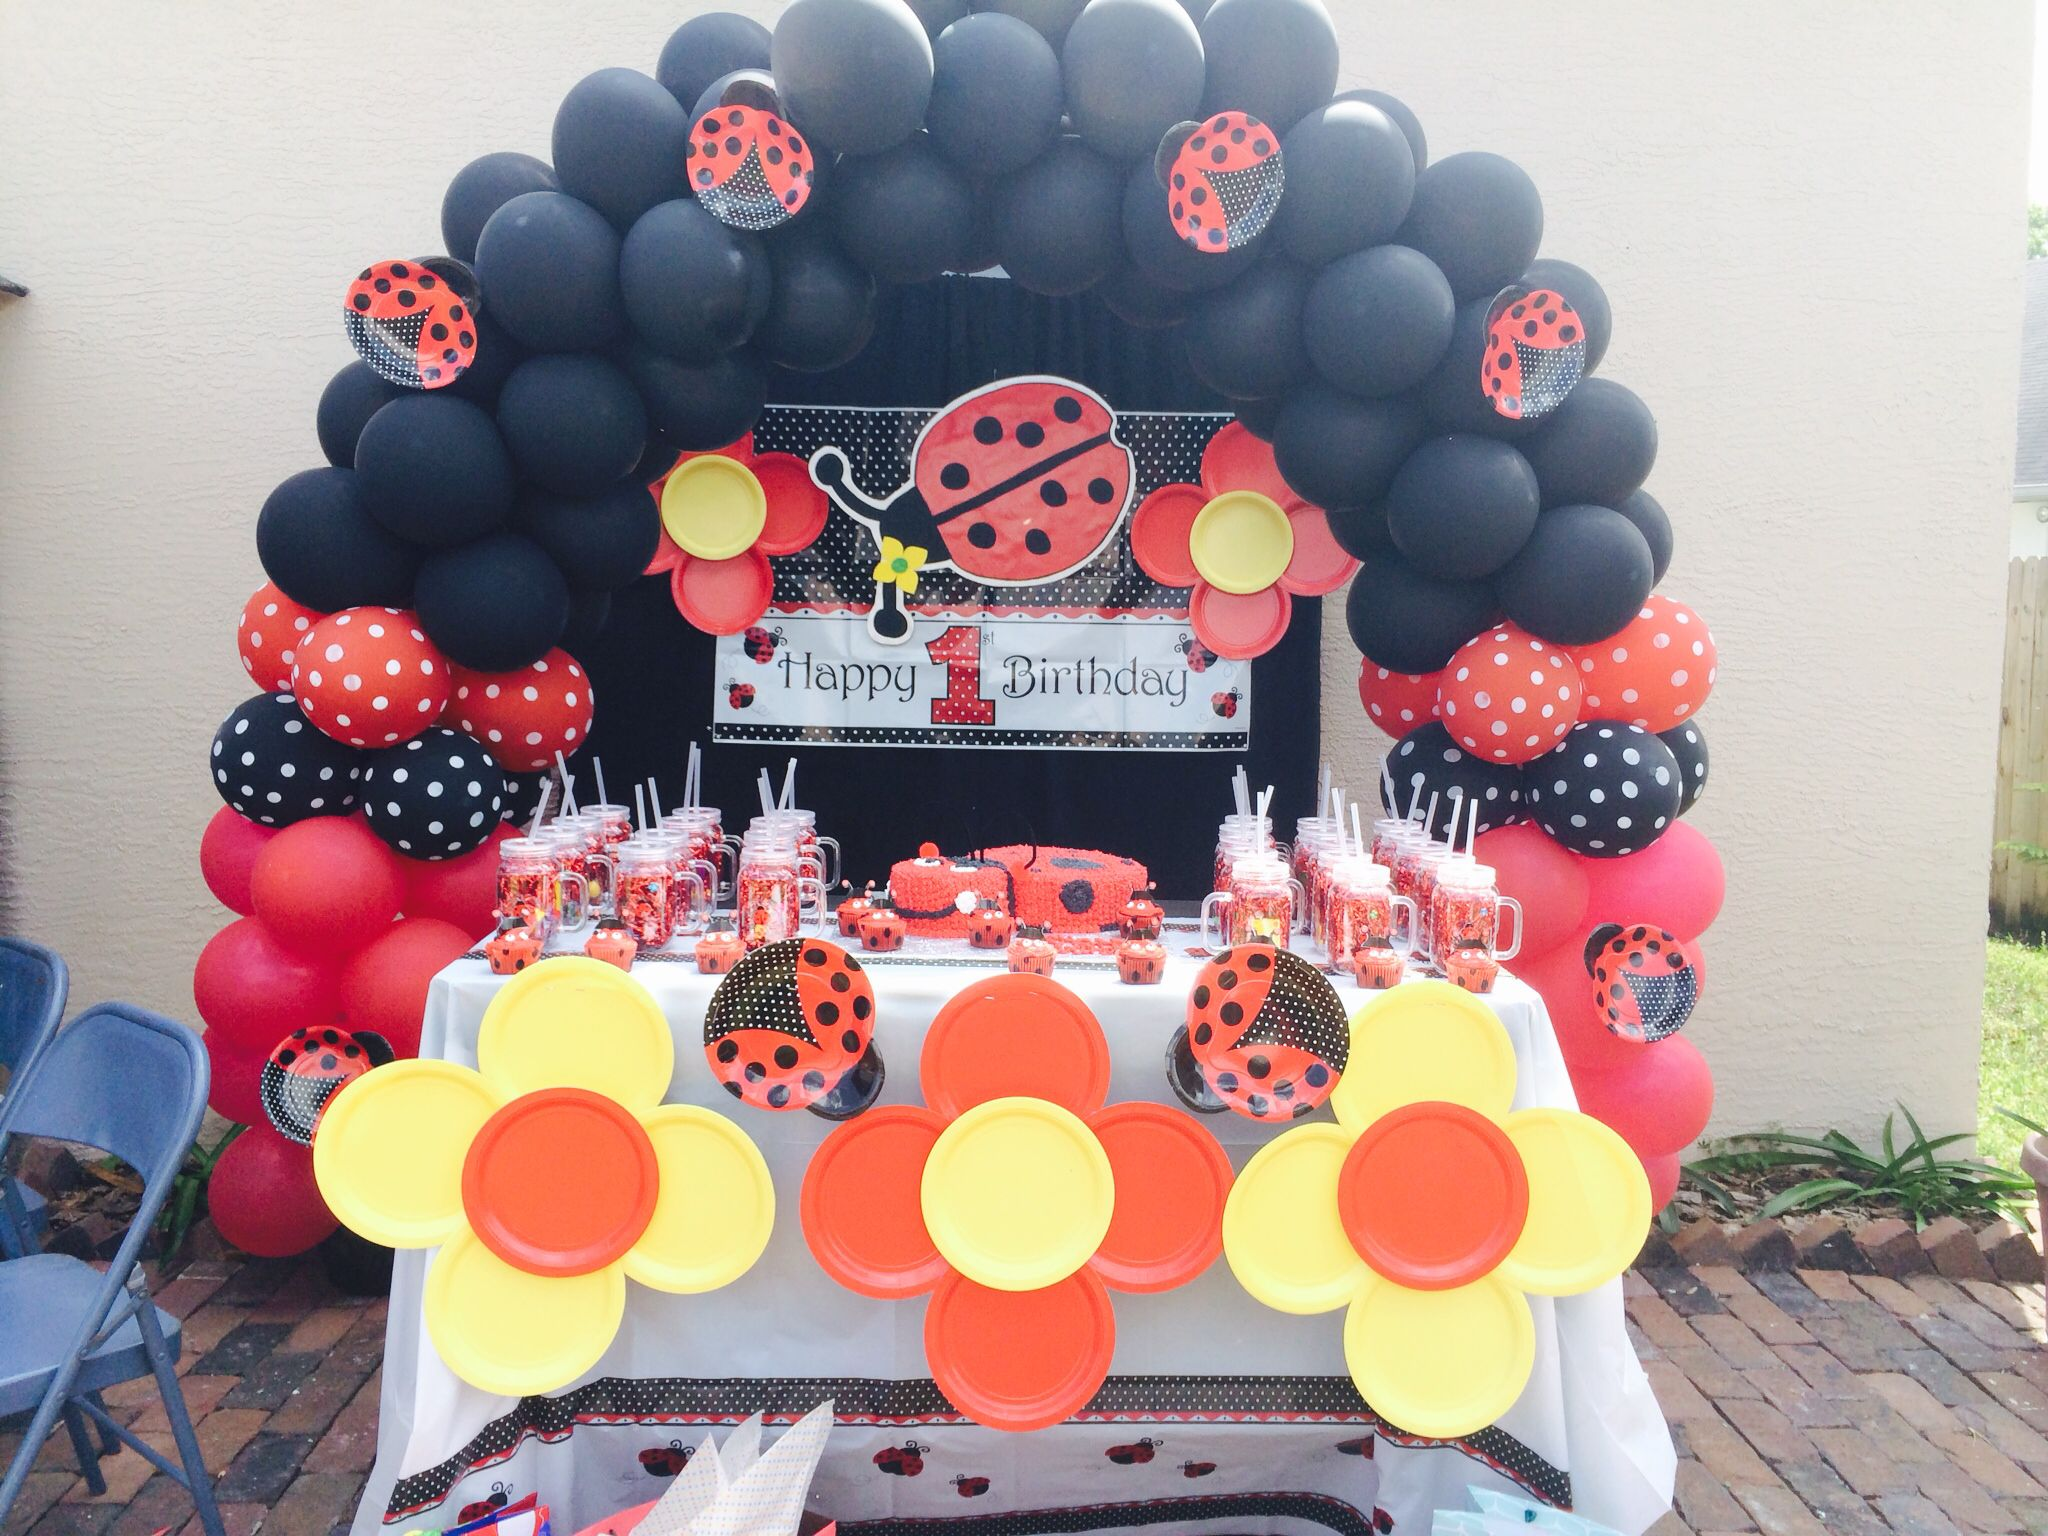 Lady bug Bellau0027s first birthday yellow black red ballon frame arc cake wall decor flow paper plates favors & Lady bug Bellau0027s first birthday yellow black red ballon frame arc ...